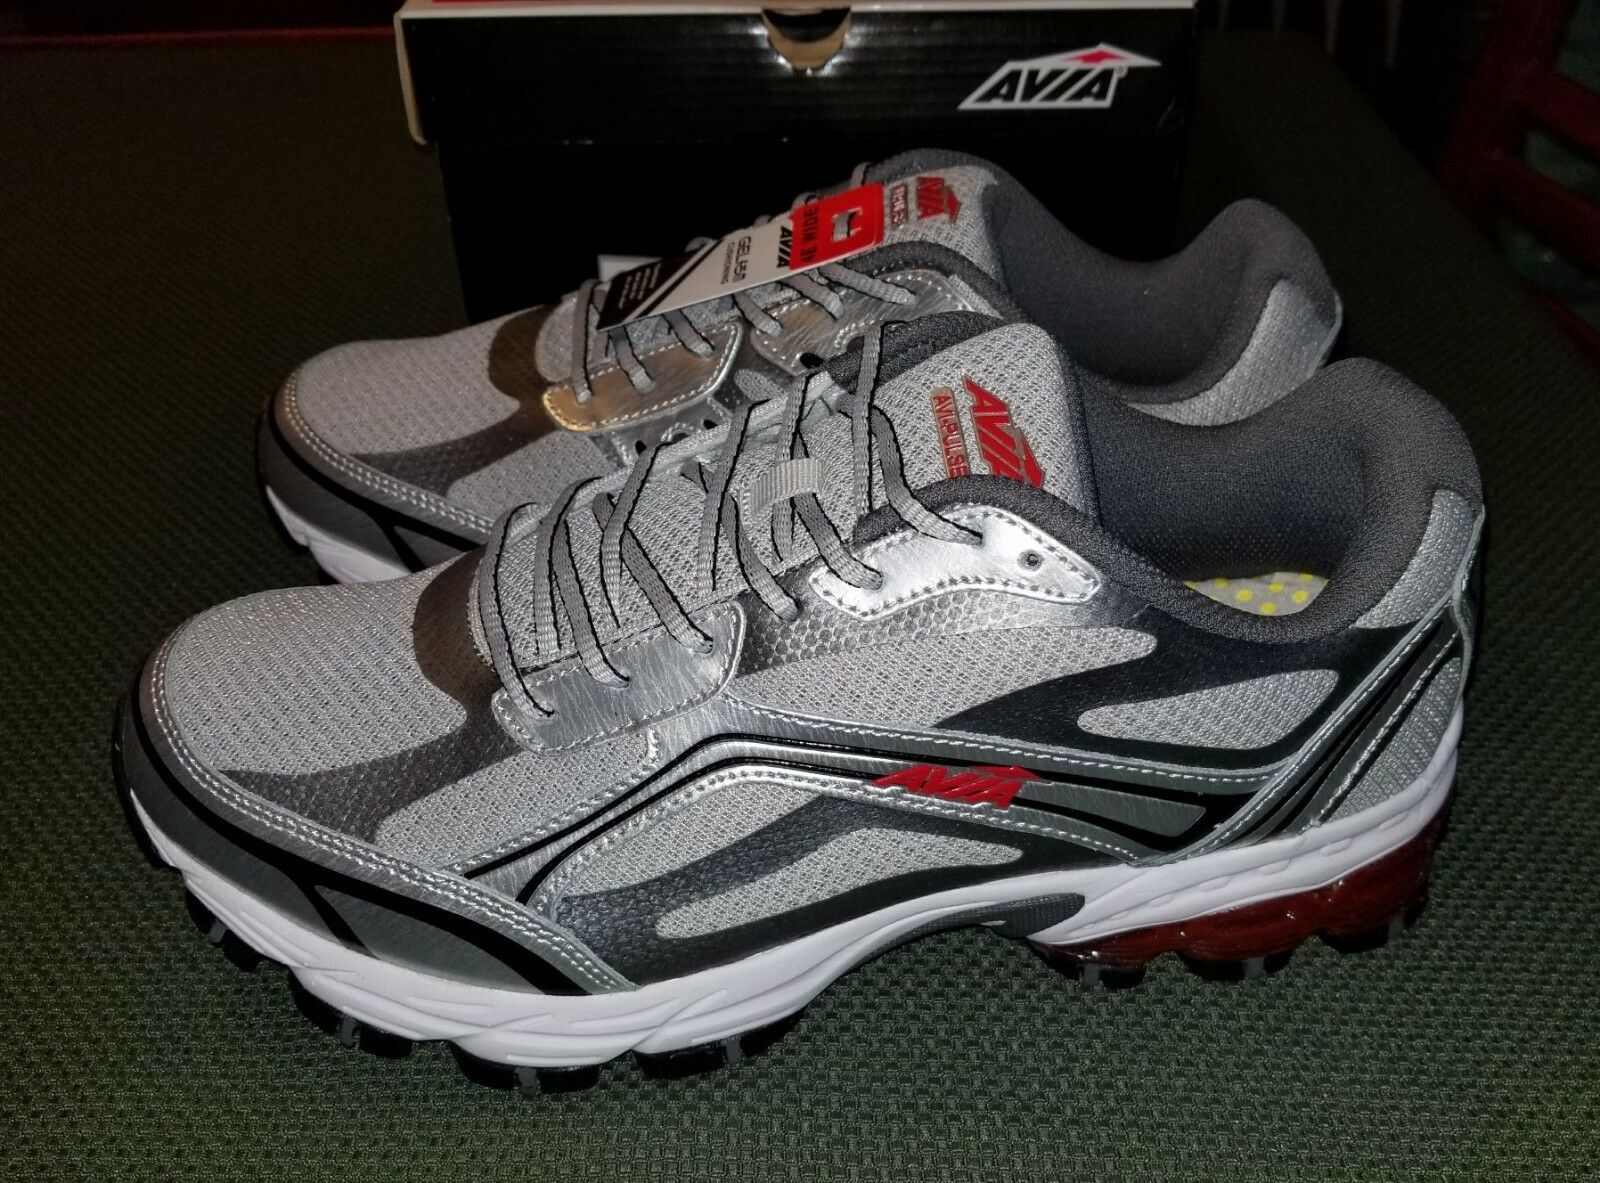 Avia Avi-Pulse Silver Grey Red Size Men-US 10.5 Extra Wide New Sneakers Shoes